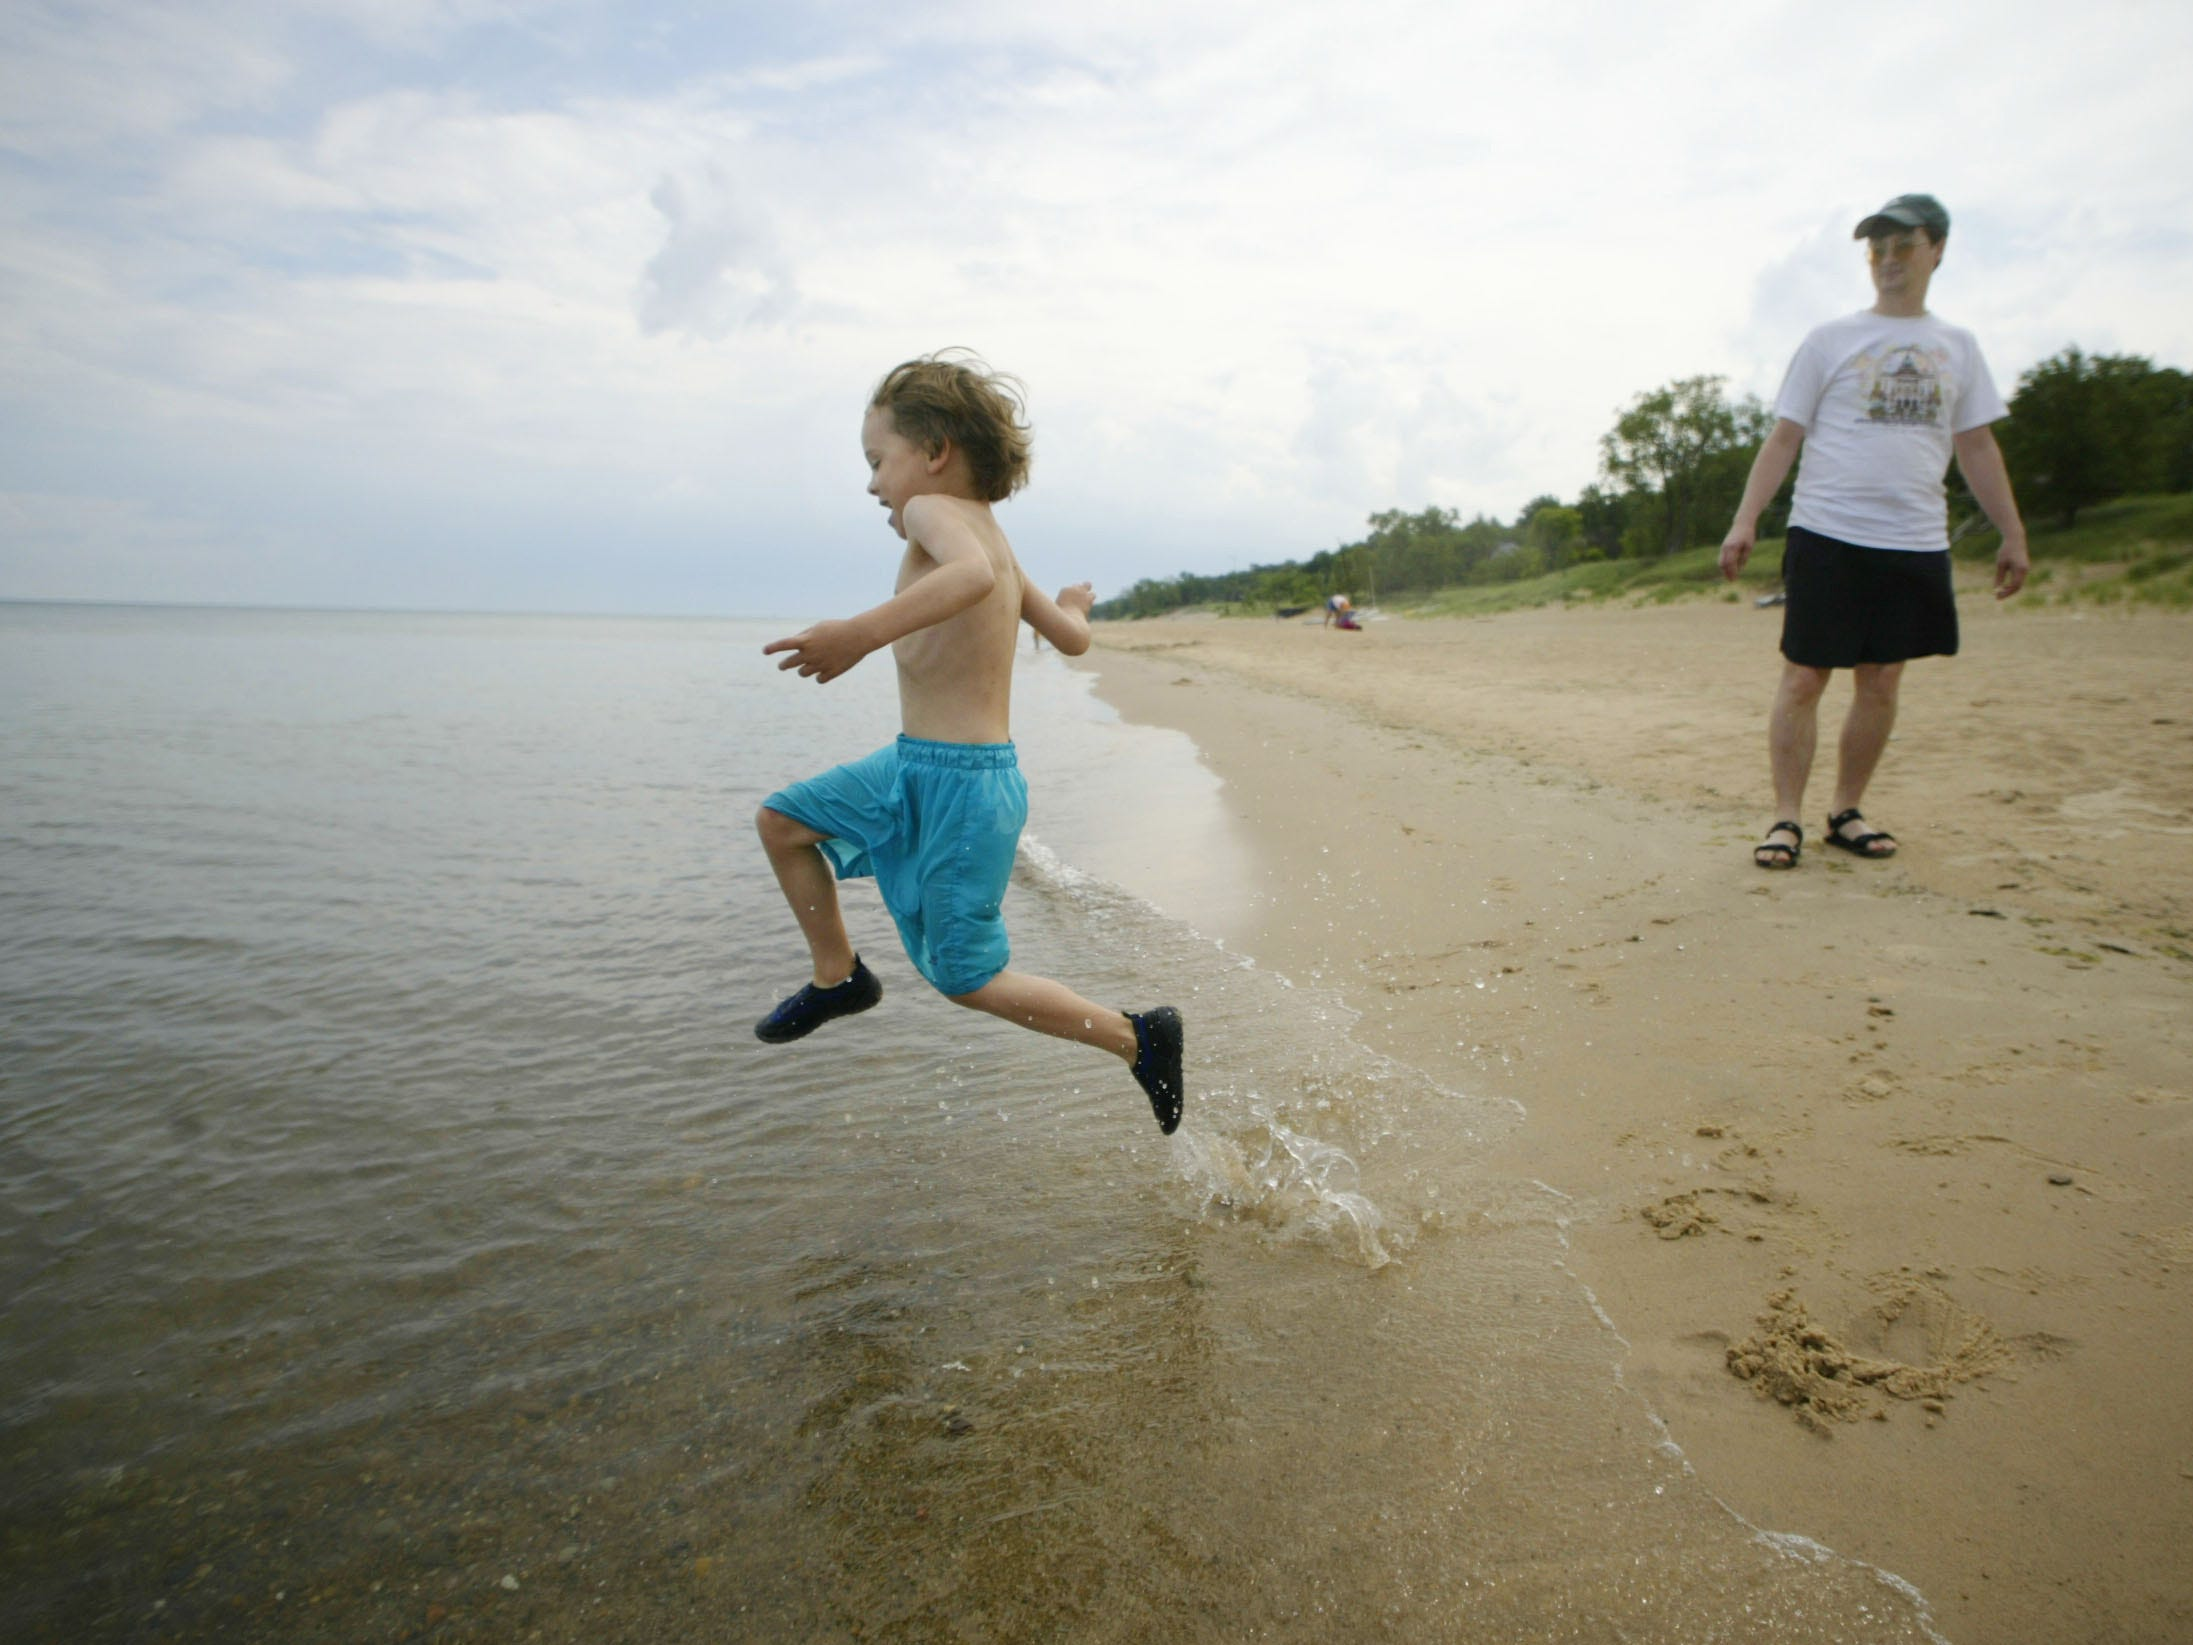 Joe Eagle, 5, of Homewood, Illinois, leaps into Lake Michigan at Lakeview Beach near Beverly Shores, Indiana, as his father Jay looks on.